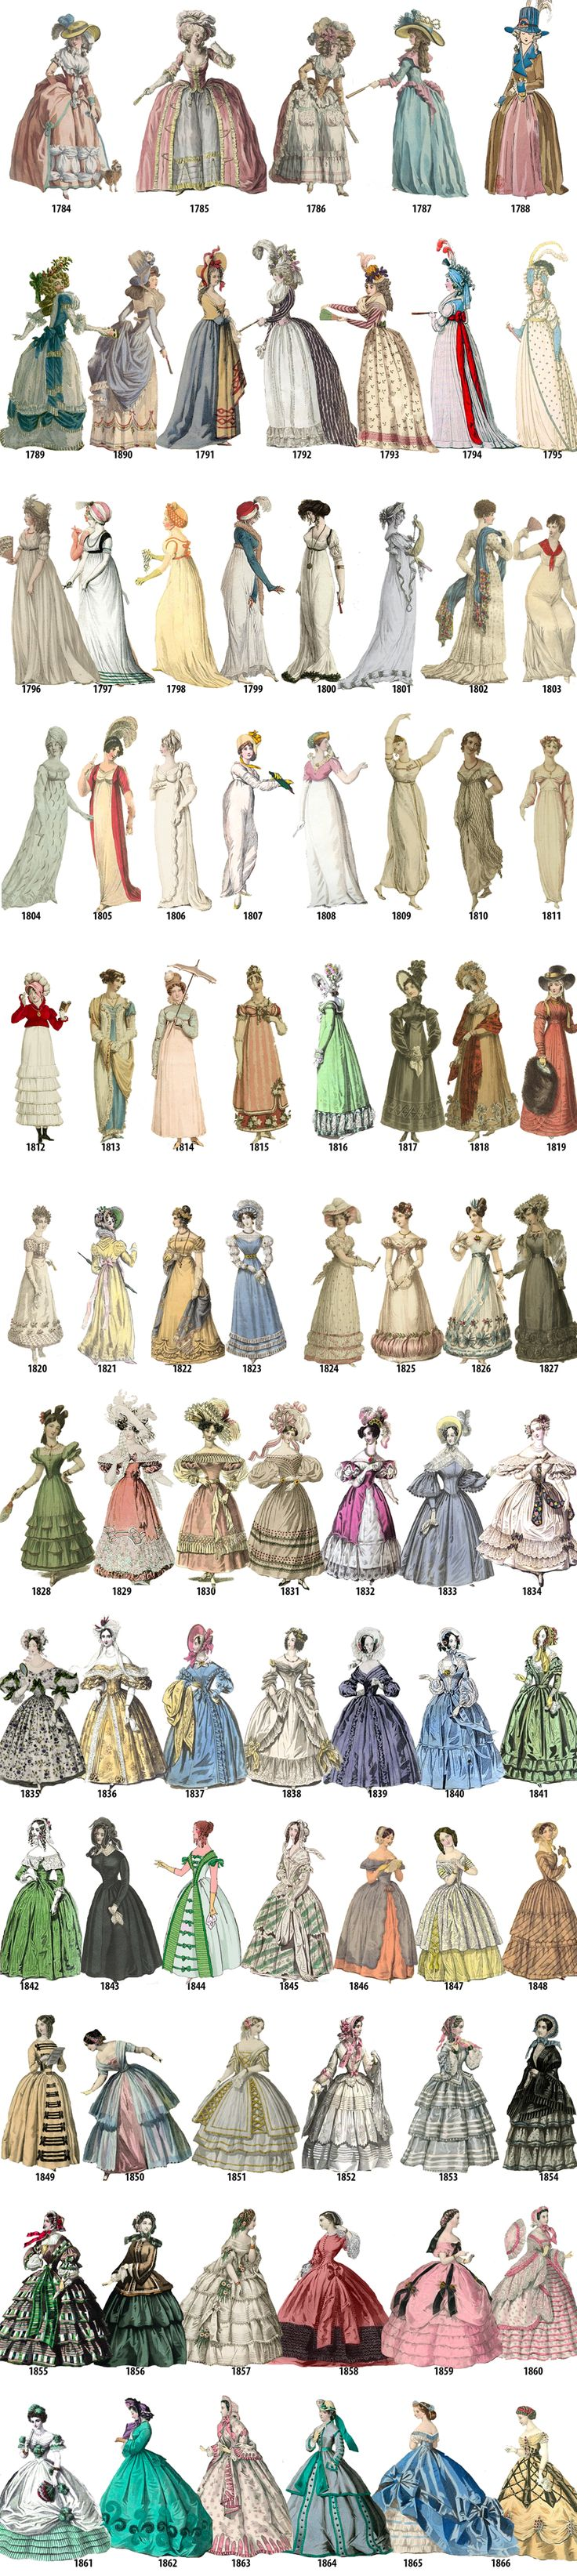 Women's fashion in every year from 1784-1970 – yijun liu